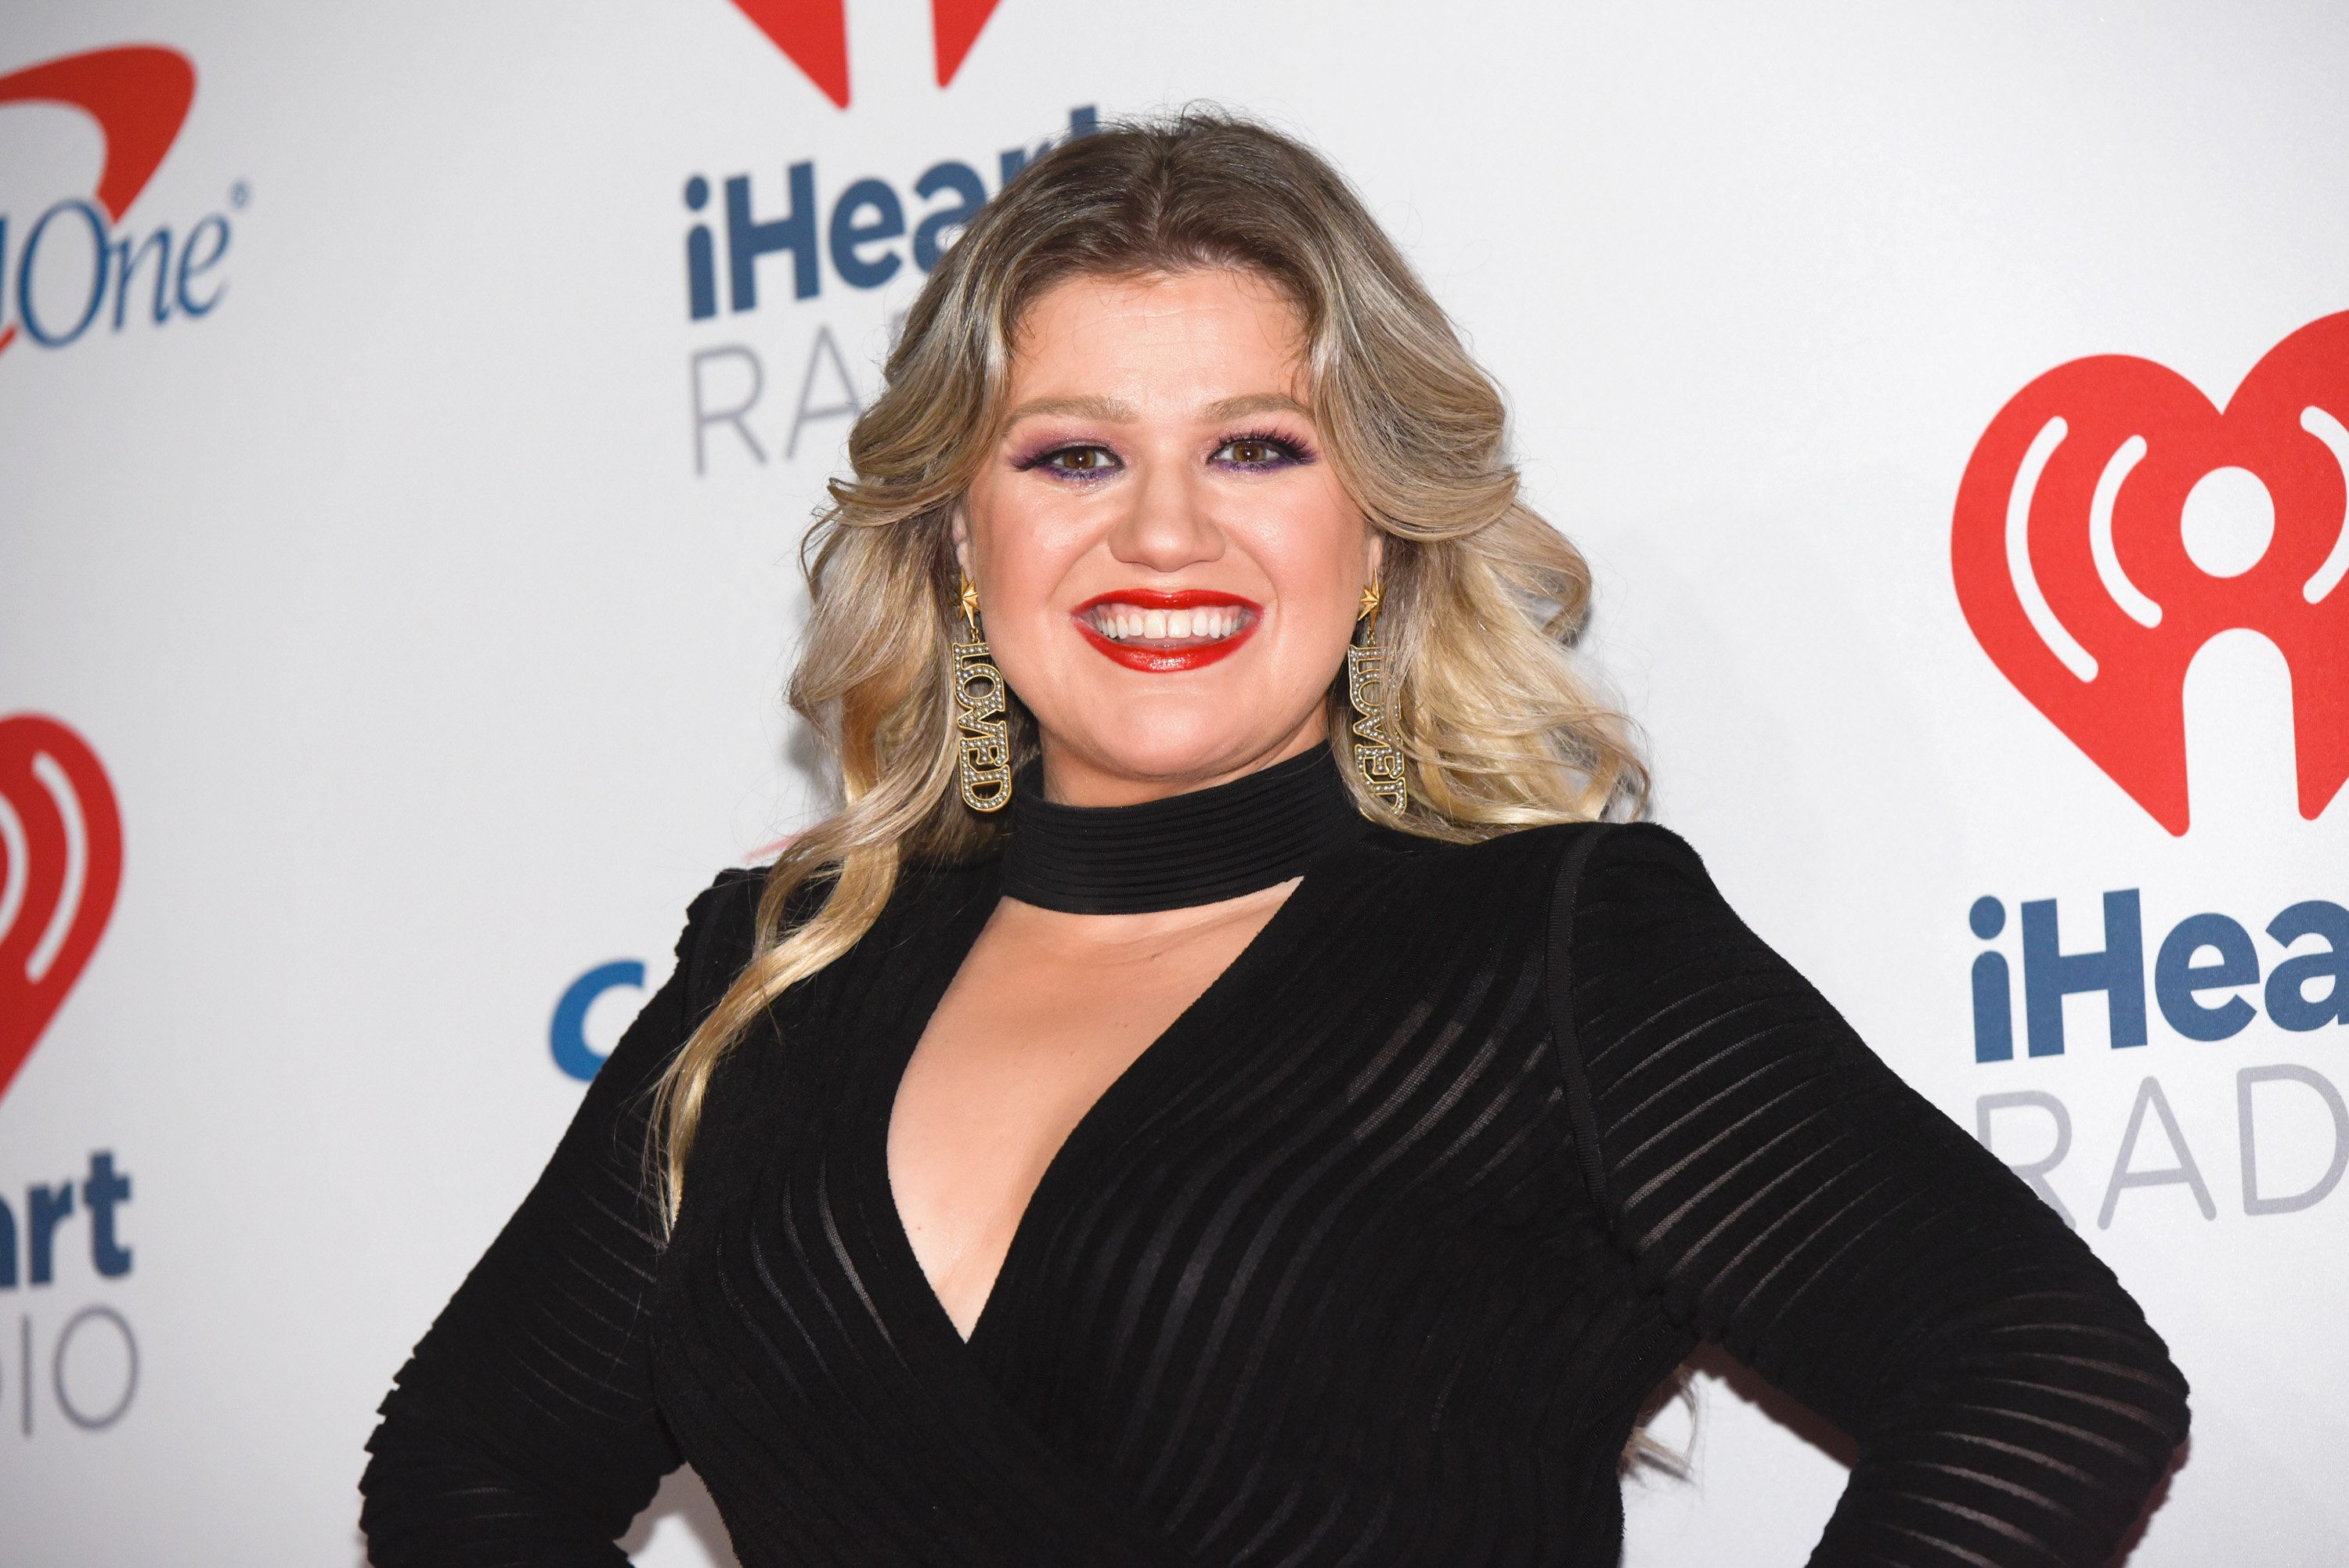 LAS VEGAS, NV - SEPTEMBER 22:  Kelly Clarkson attends the 2018 iHeartRadio Music Festival at T-Mobile Arena on September 22, 2018 in Las Vegas, Nevada.  (Photo by Tara Ziemba/FilmMagic)